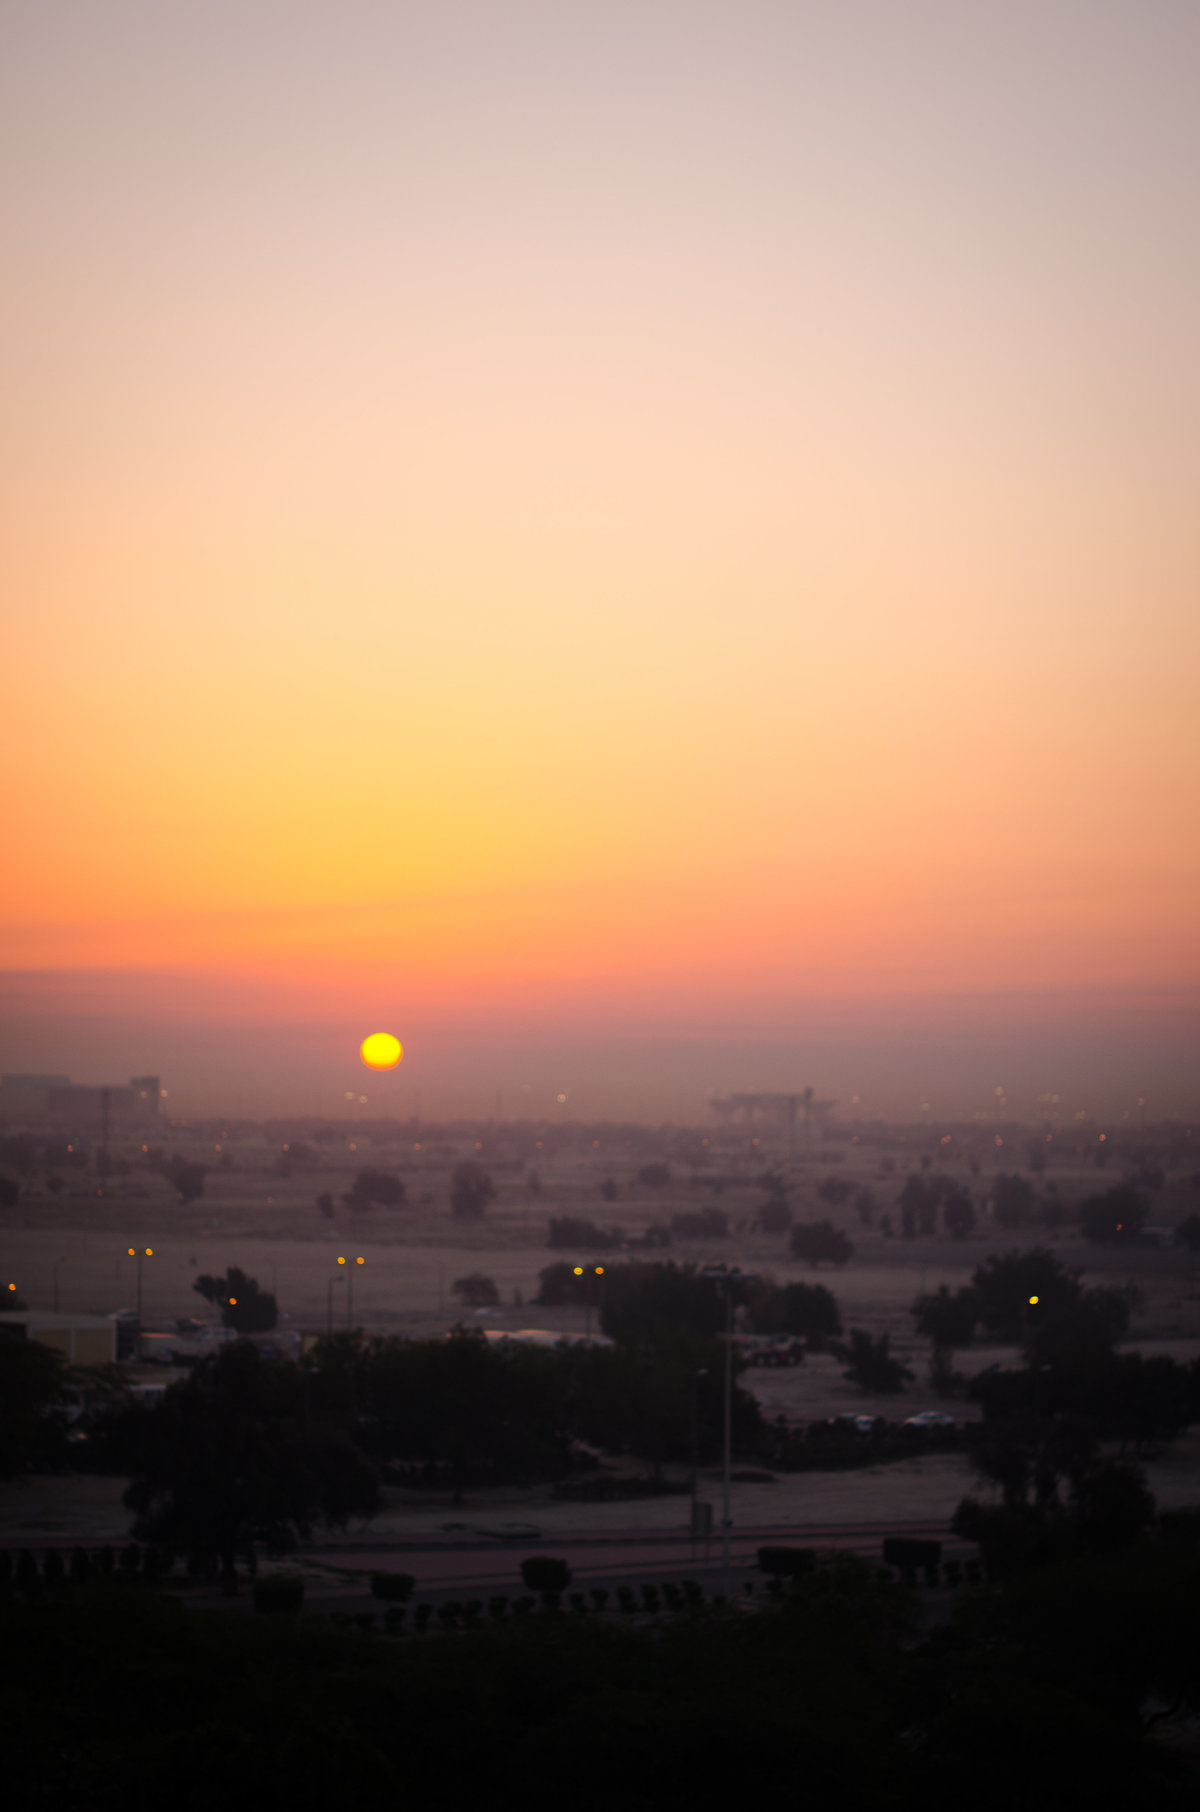 Sunrise of Farwaniya, Kuwait City